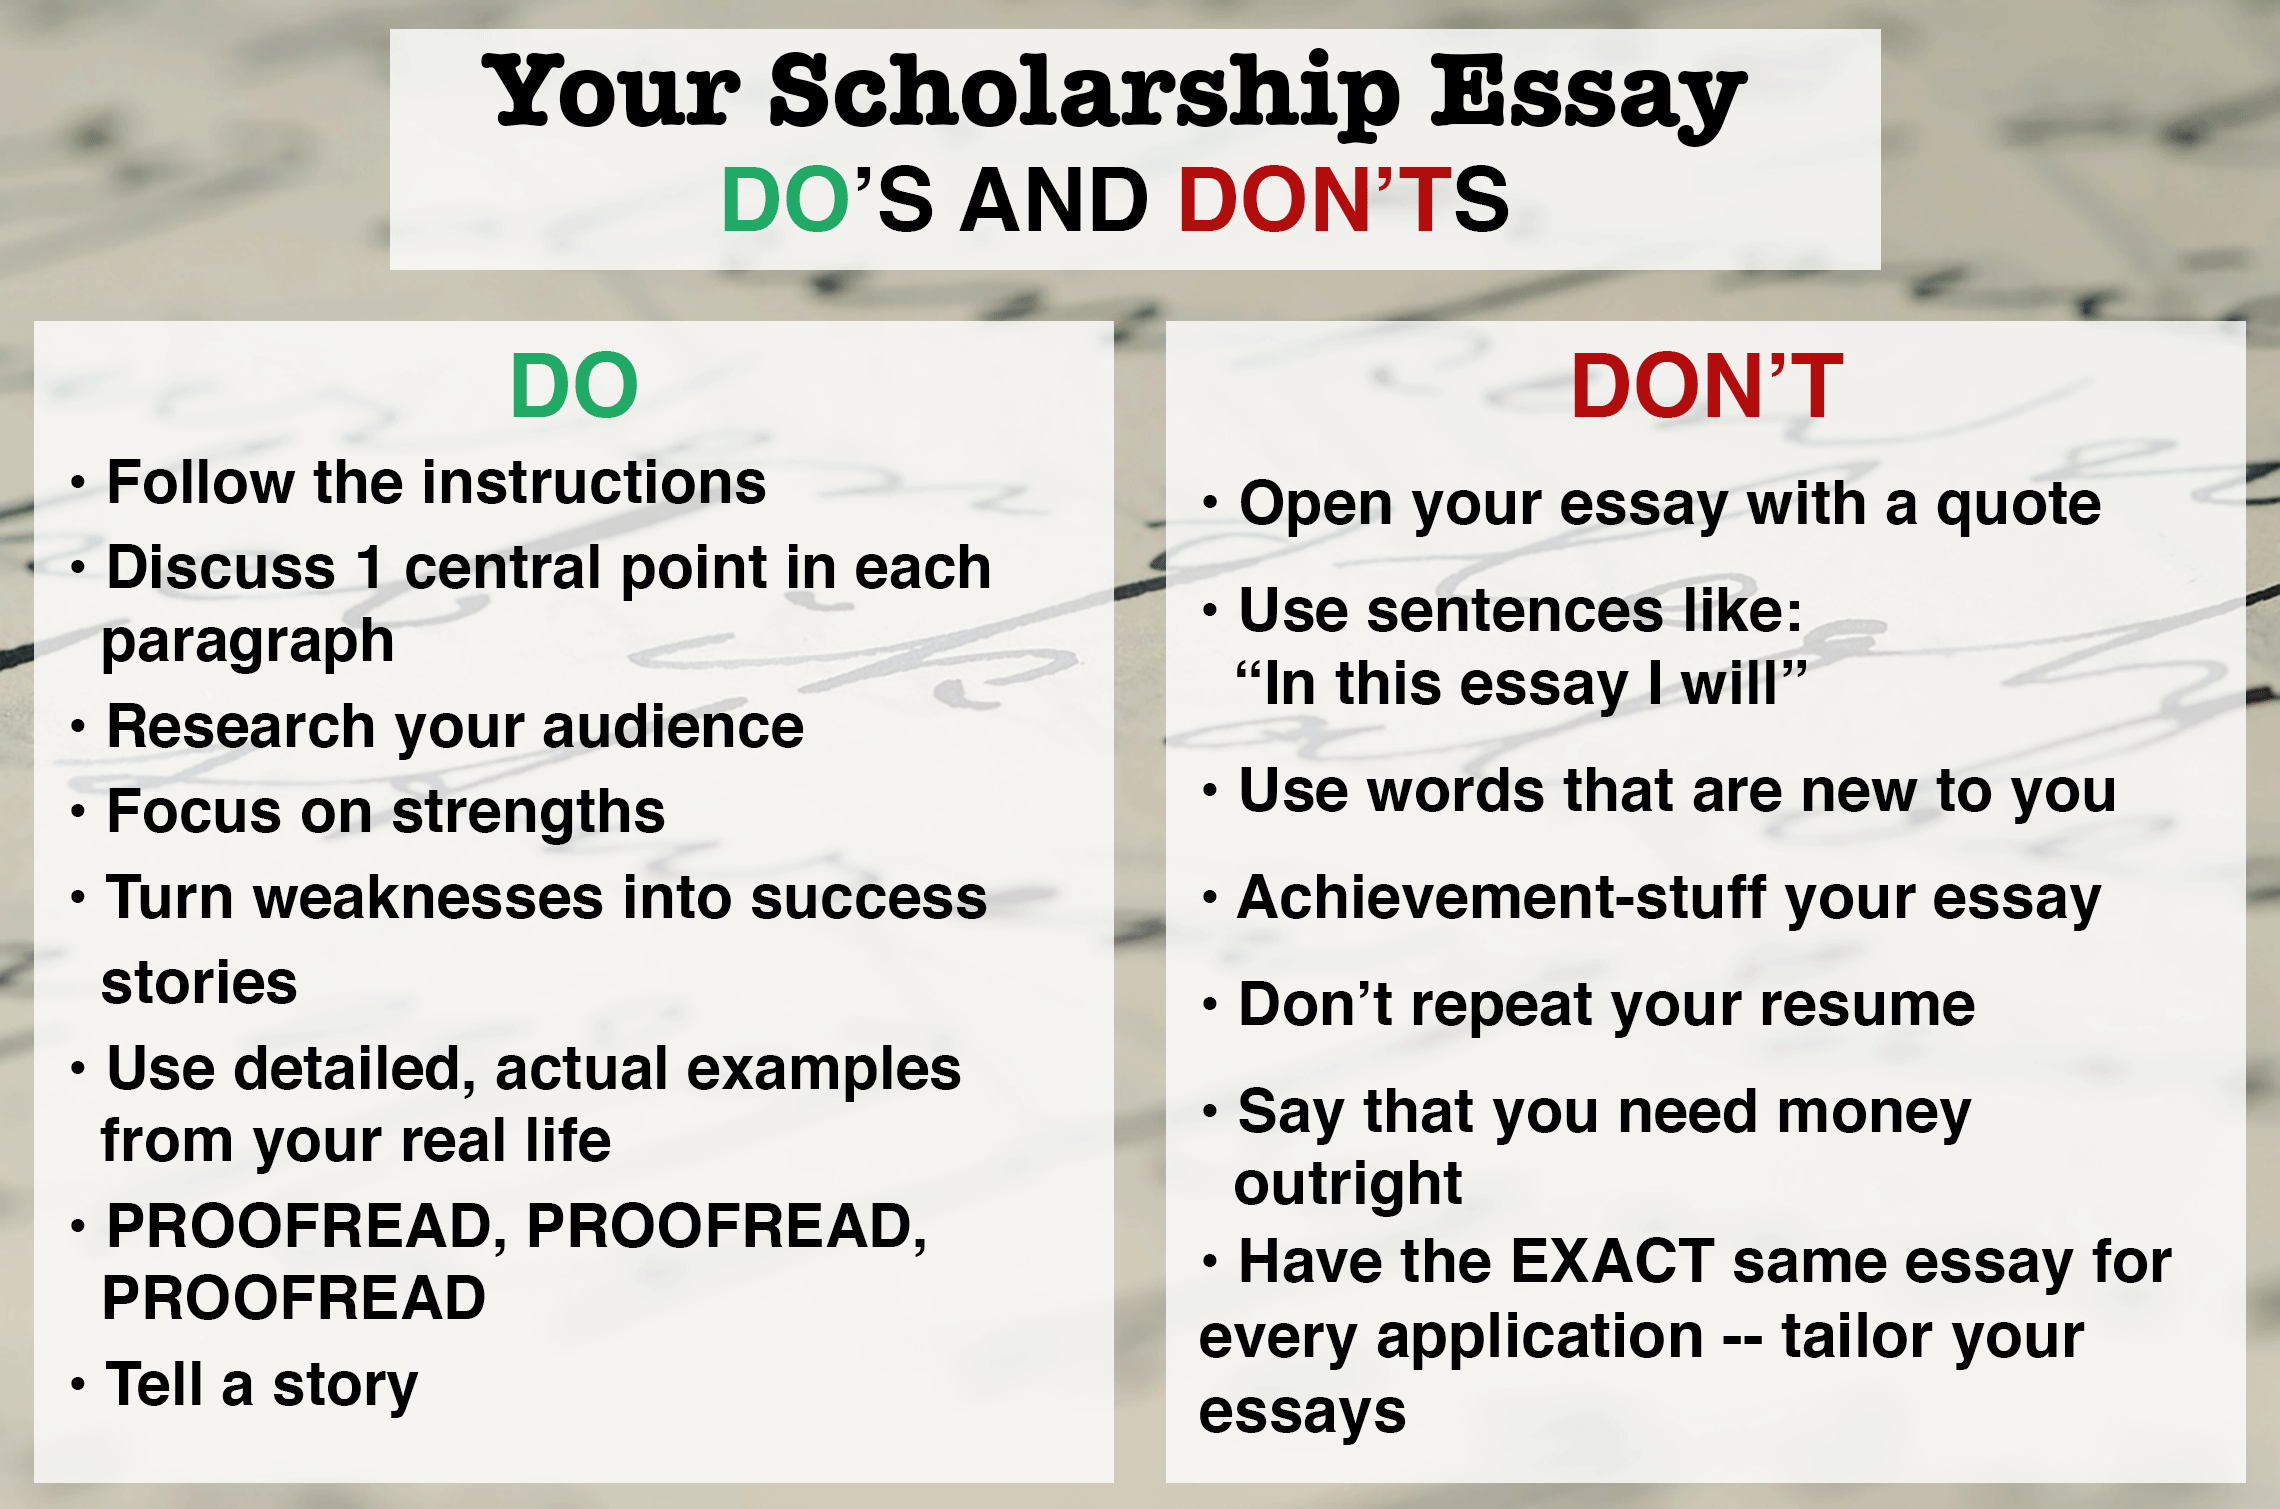 Autobiography Essay Samples Dosdontsscholes Observational Essay Examples also Transfer Essays How To Write A Winning Scholarship Essay In  Steps Middle School Essay Format